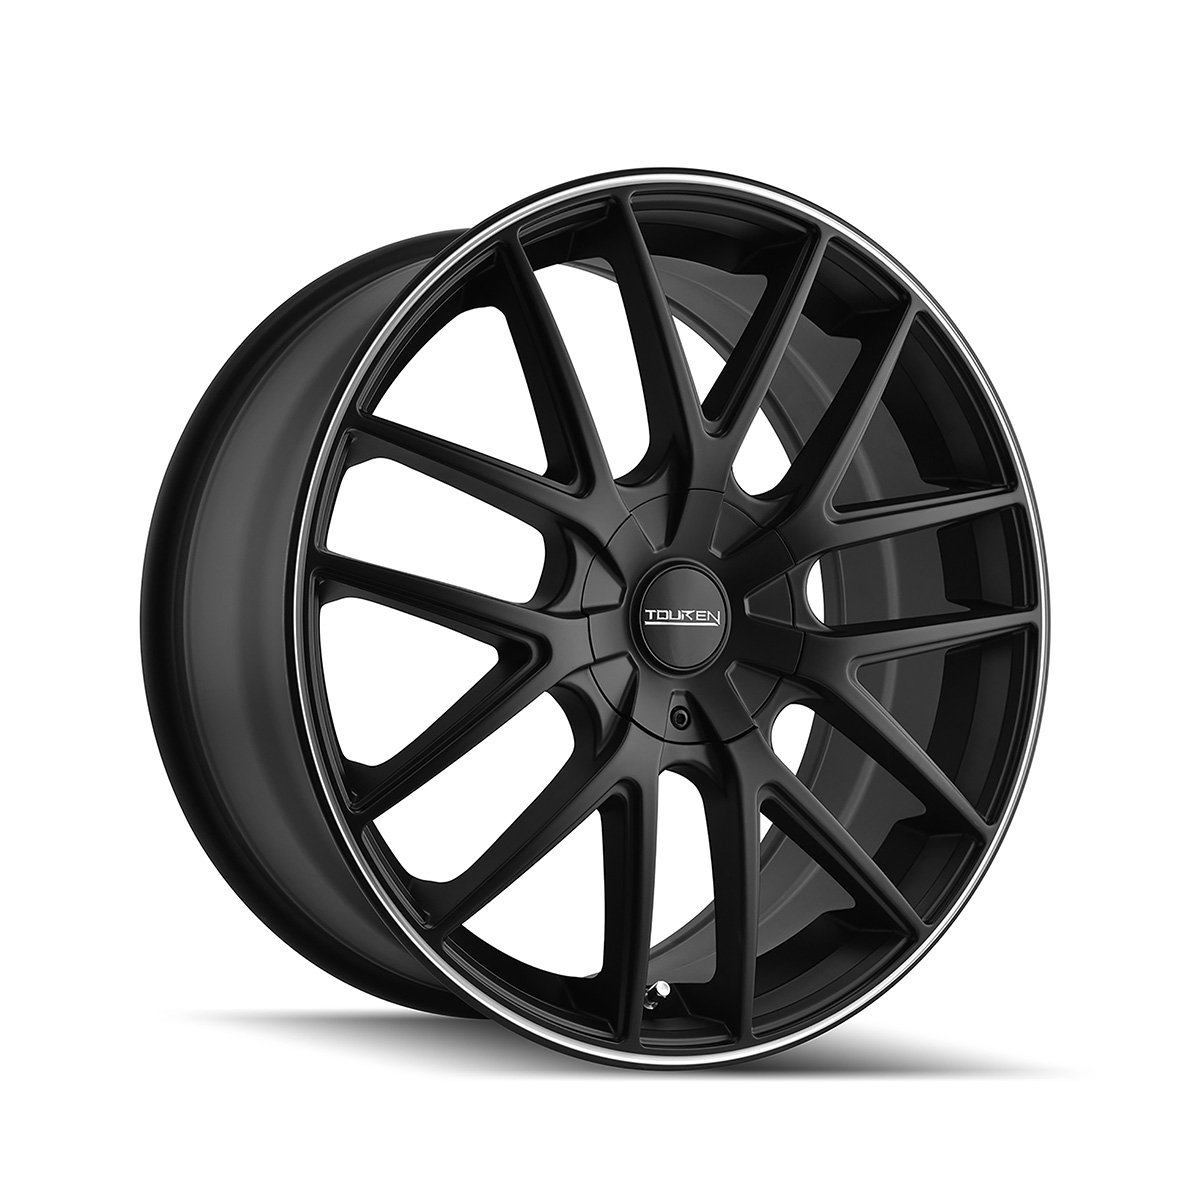 Touren TR60 17 Black Wheel / Rim 5x100 & 5x4.5 with a 42mm Offset and a 72.62 Hub Bore. Partnumber 3260-7703MB